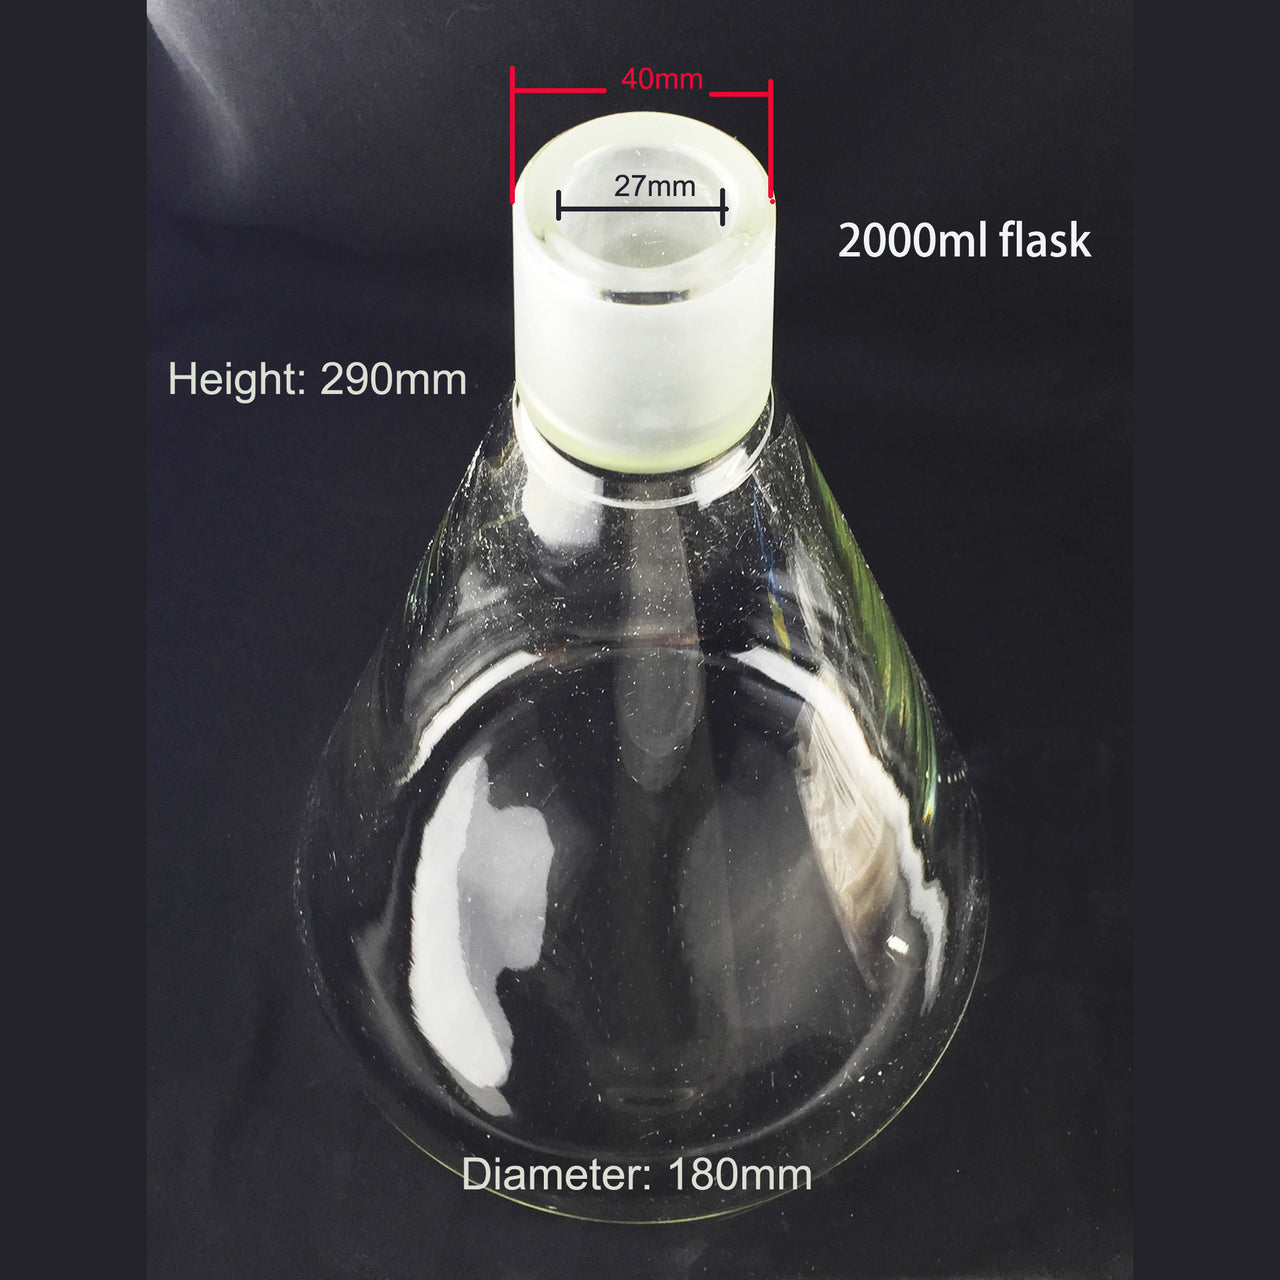 2L Glass Filter Flask for the Azzota Filtration Apparatus